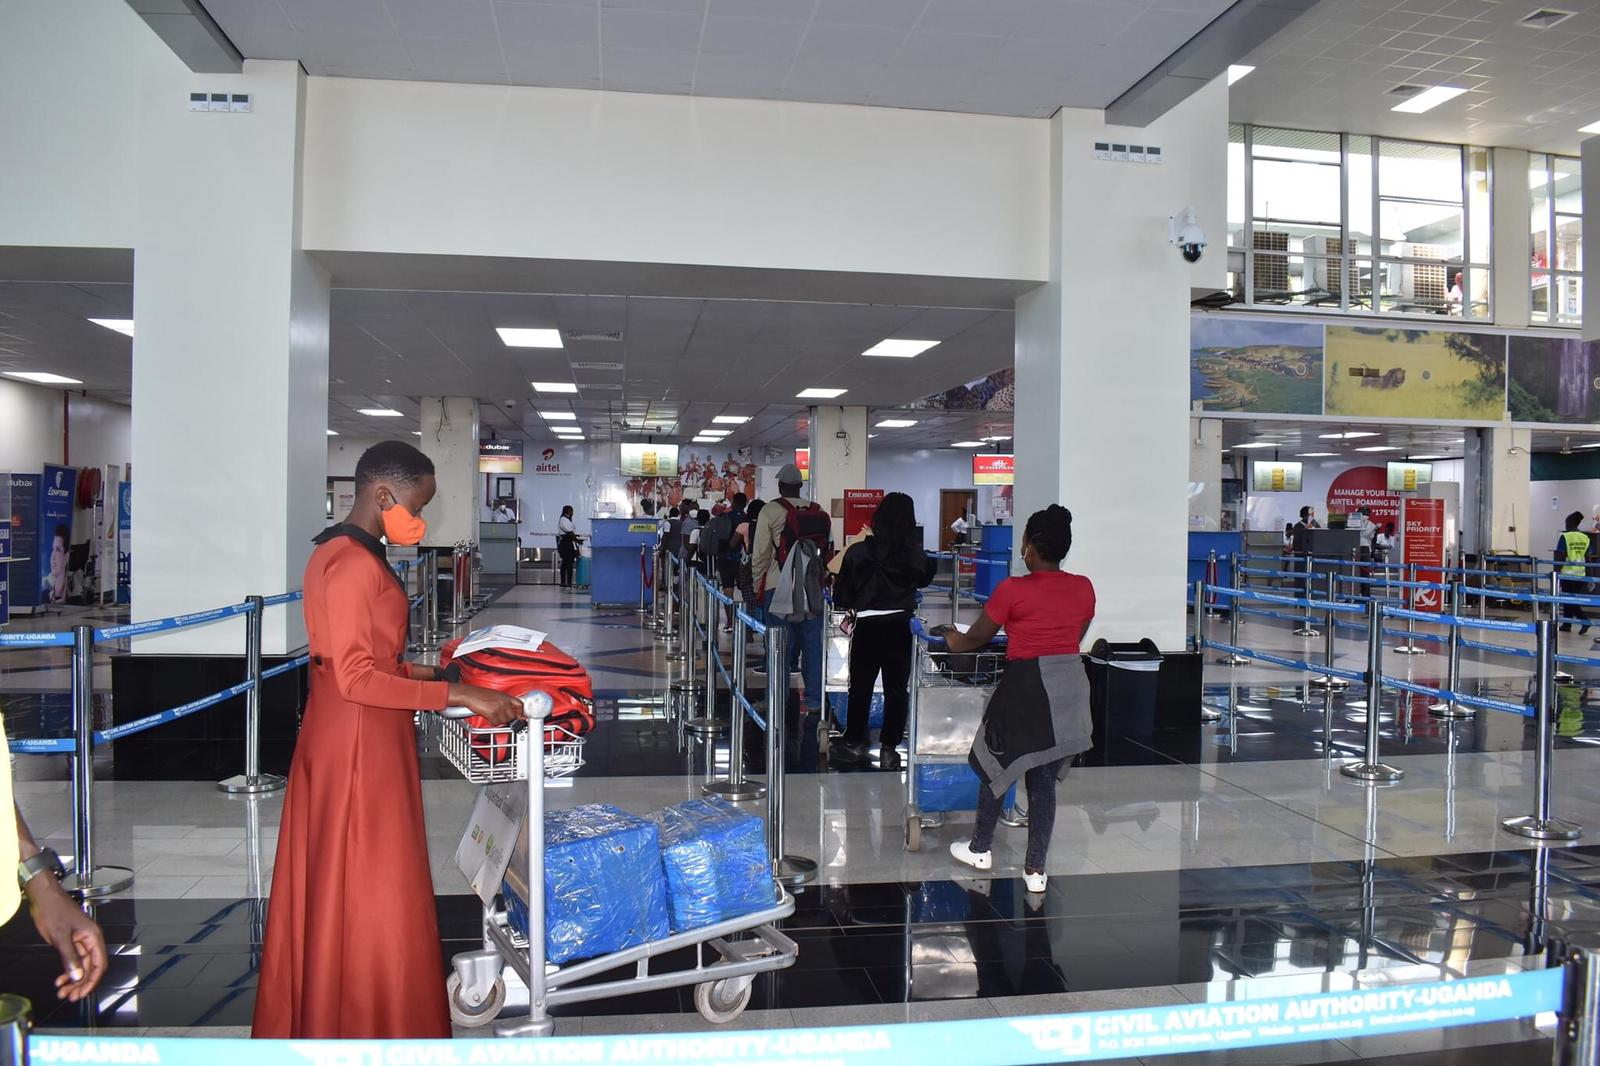 New Covid Testing Guidlines at Entebbe International Airport